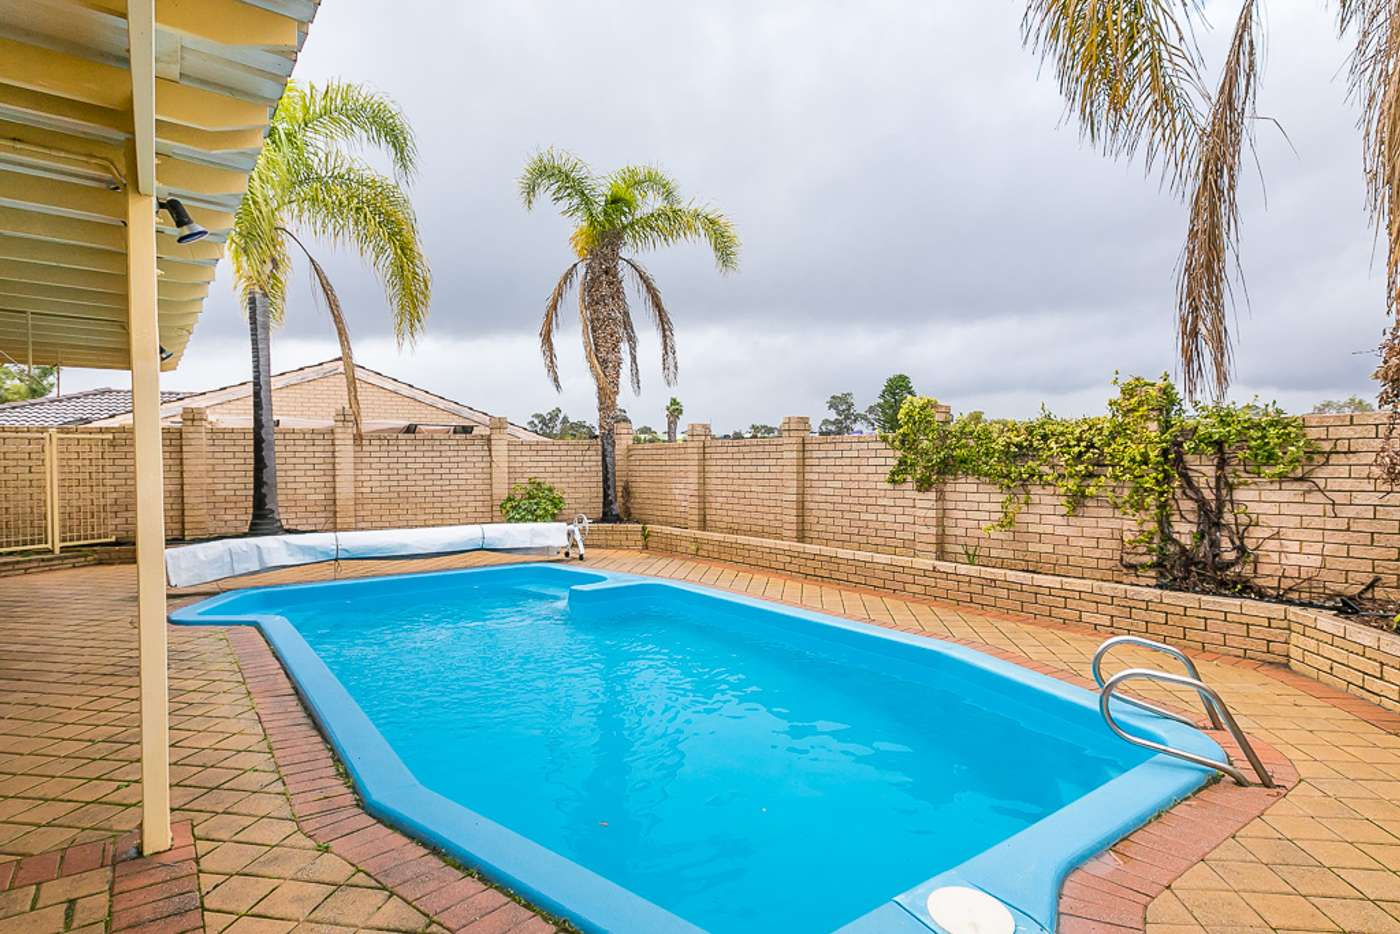 Main view of Homely house listing, 2 Melo Court, Heathridge WA 6027